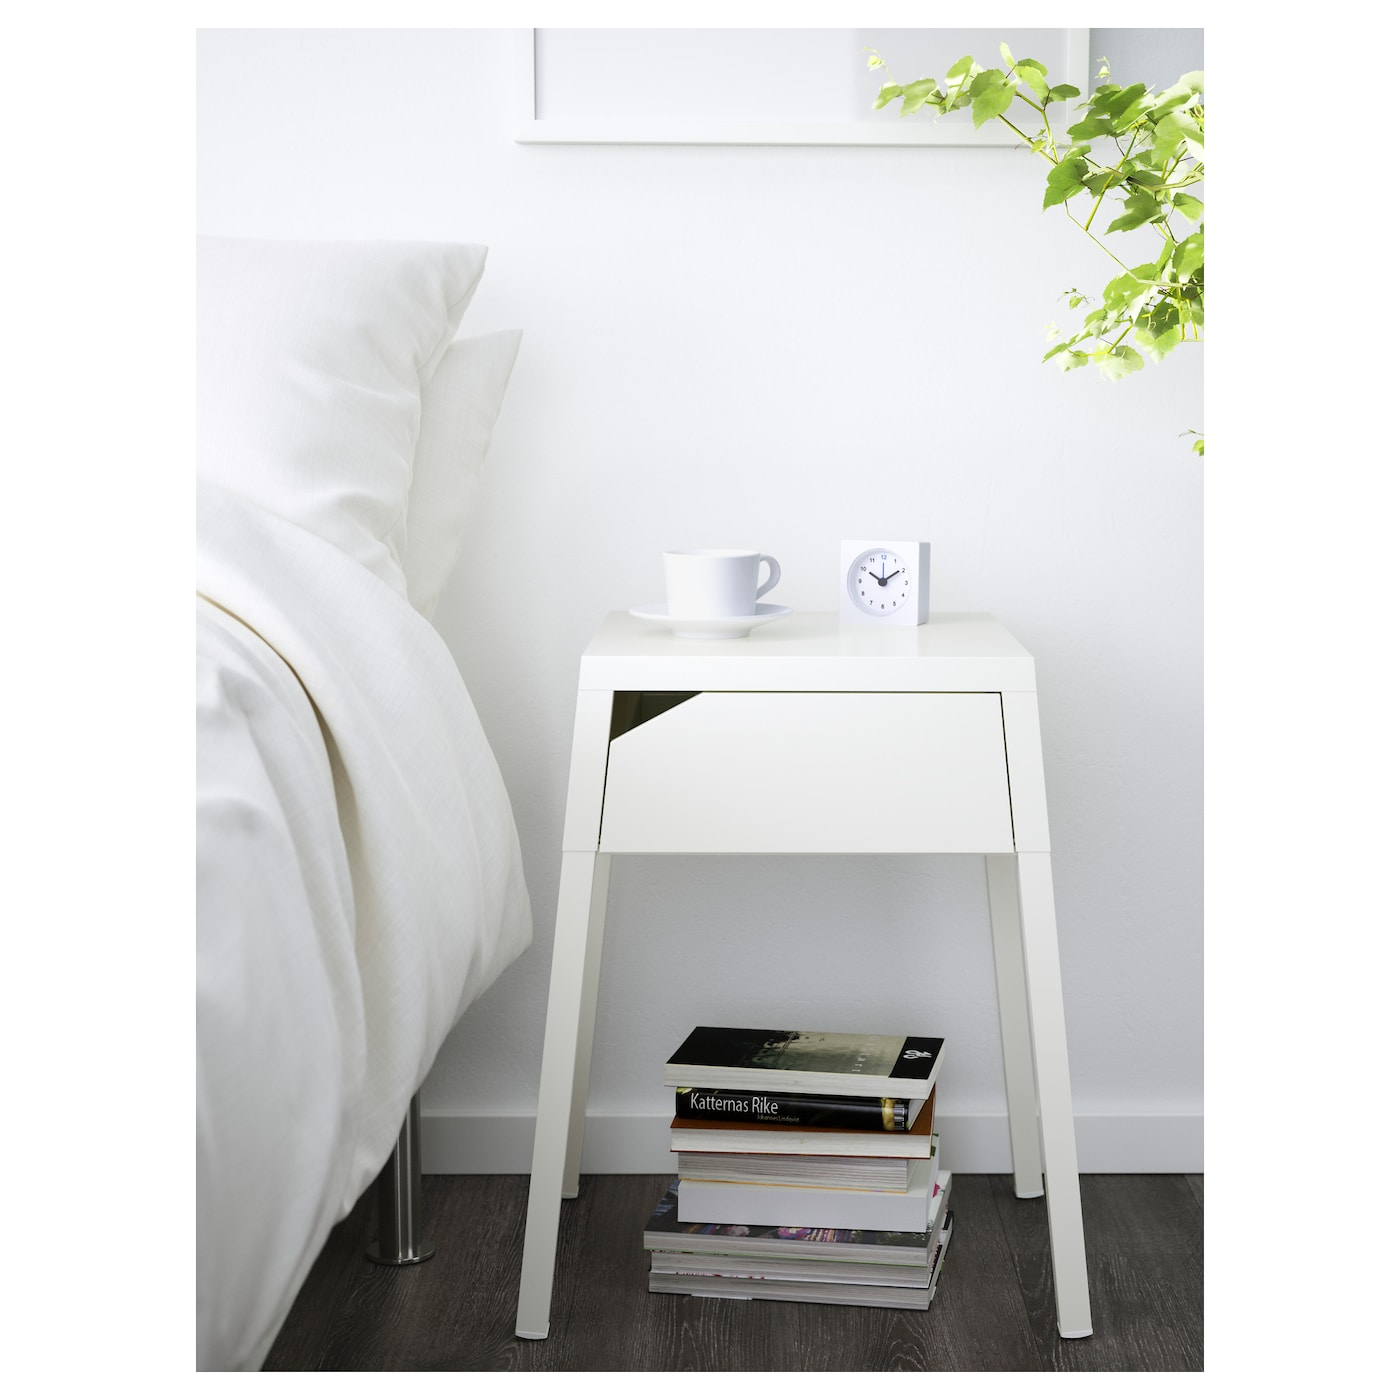 ikea selje bedside table in the drawer there is room for an extension